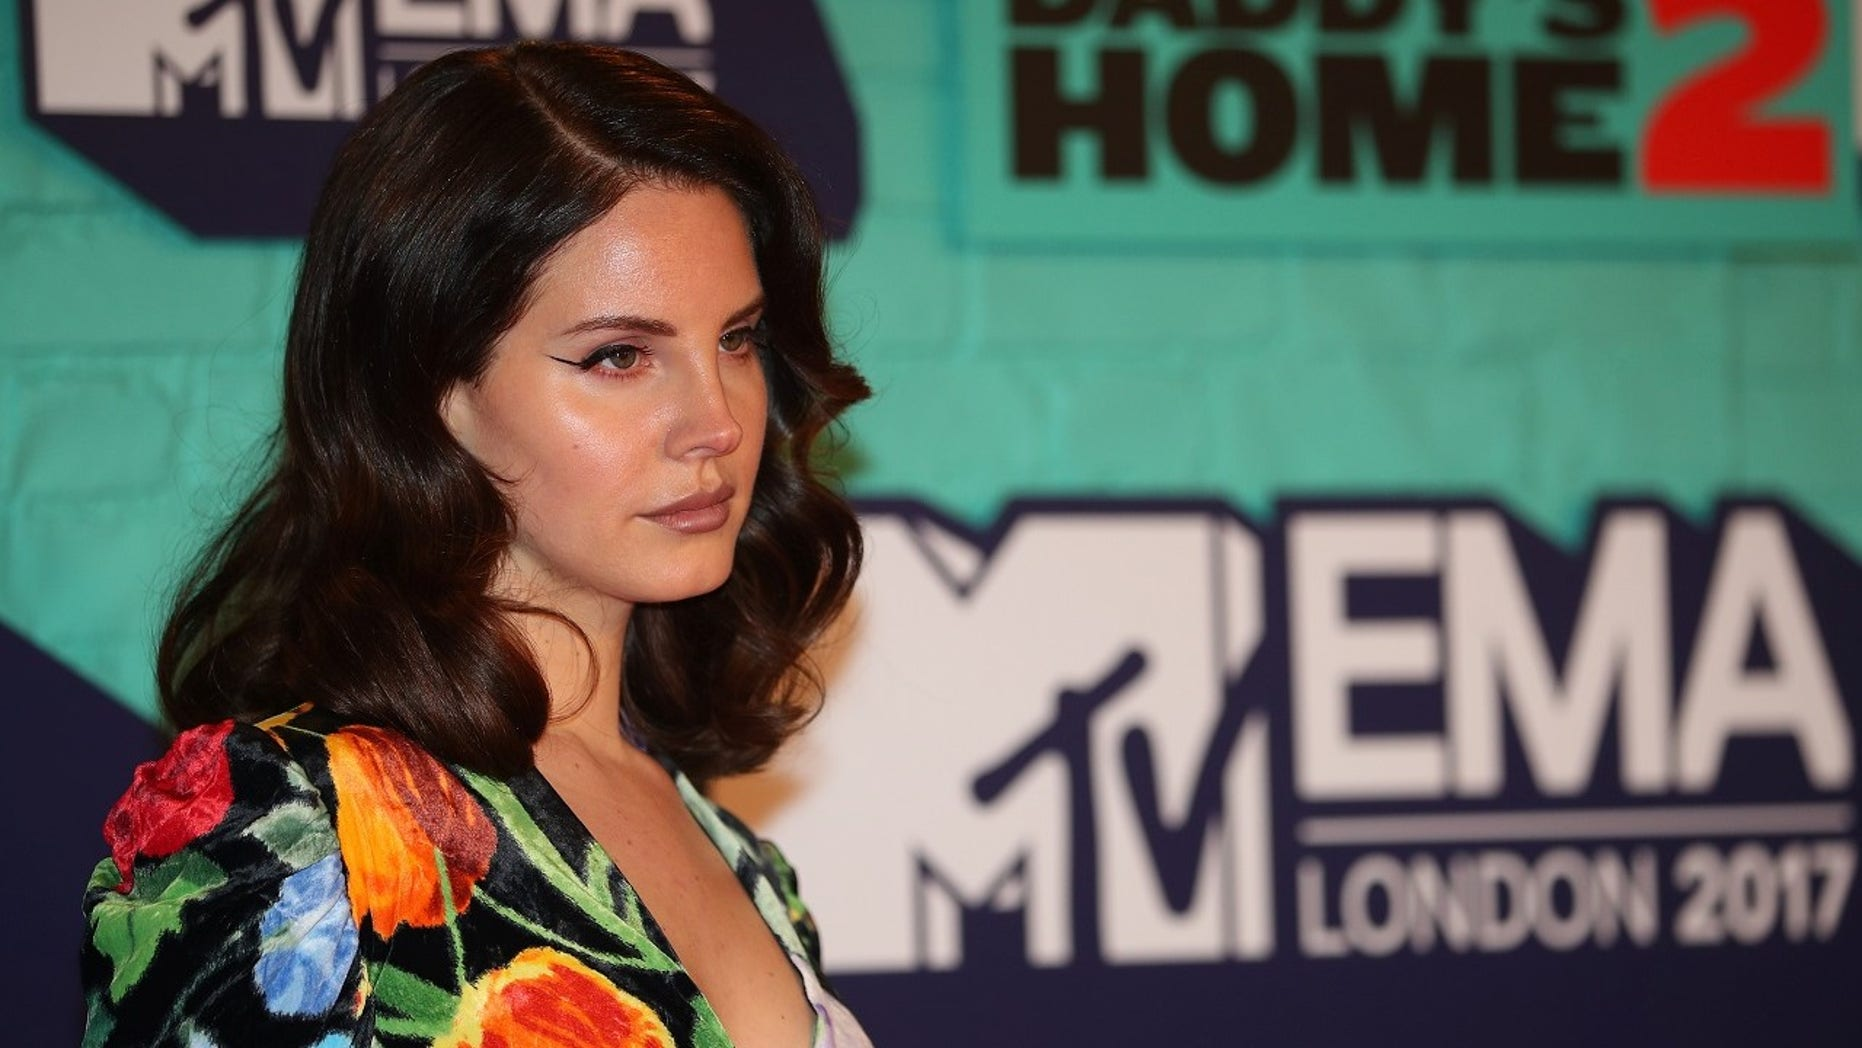 """Lana Del Rey said she is being sued by Radiohead over similarities between her song """"Get Free"""" and the band's 1992 hit """"Creep."""""""